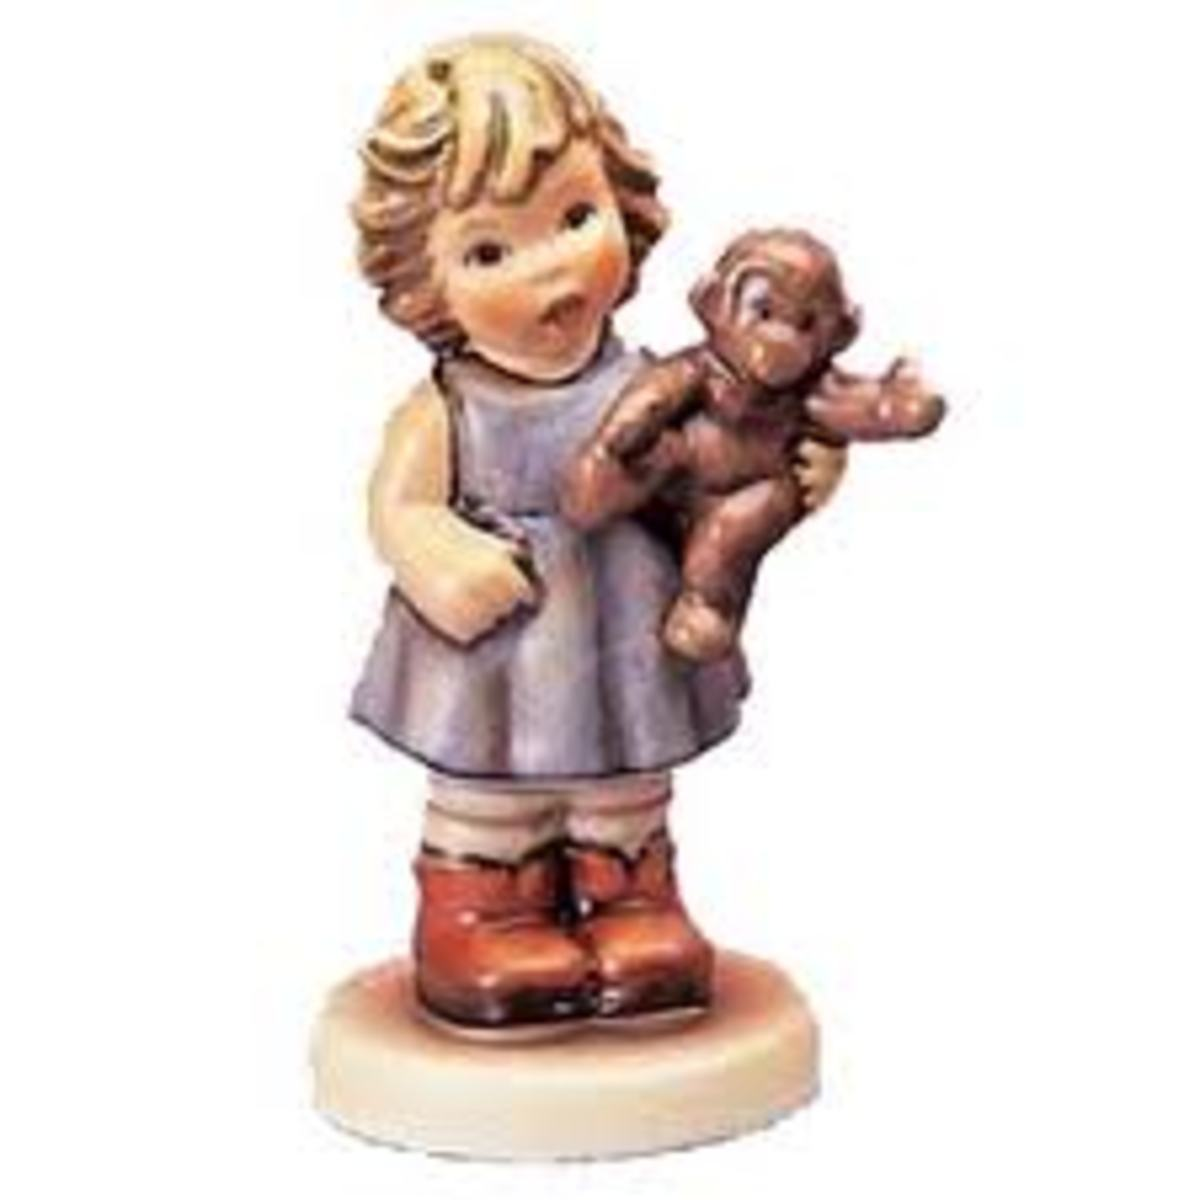 Hummel Figurines - Where to Buy for the Best Price